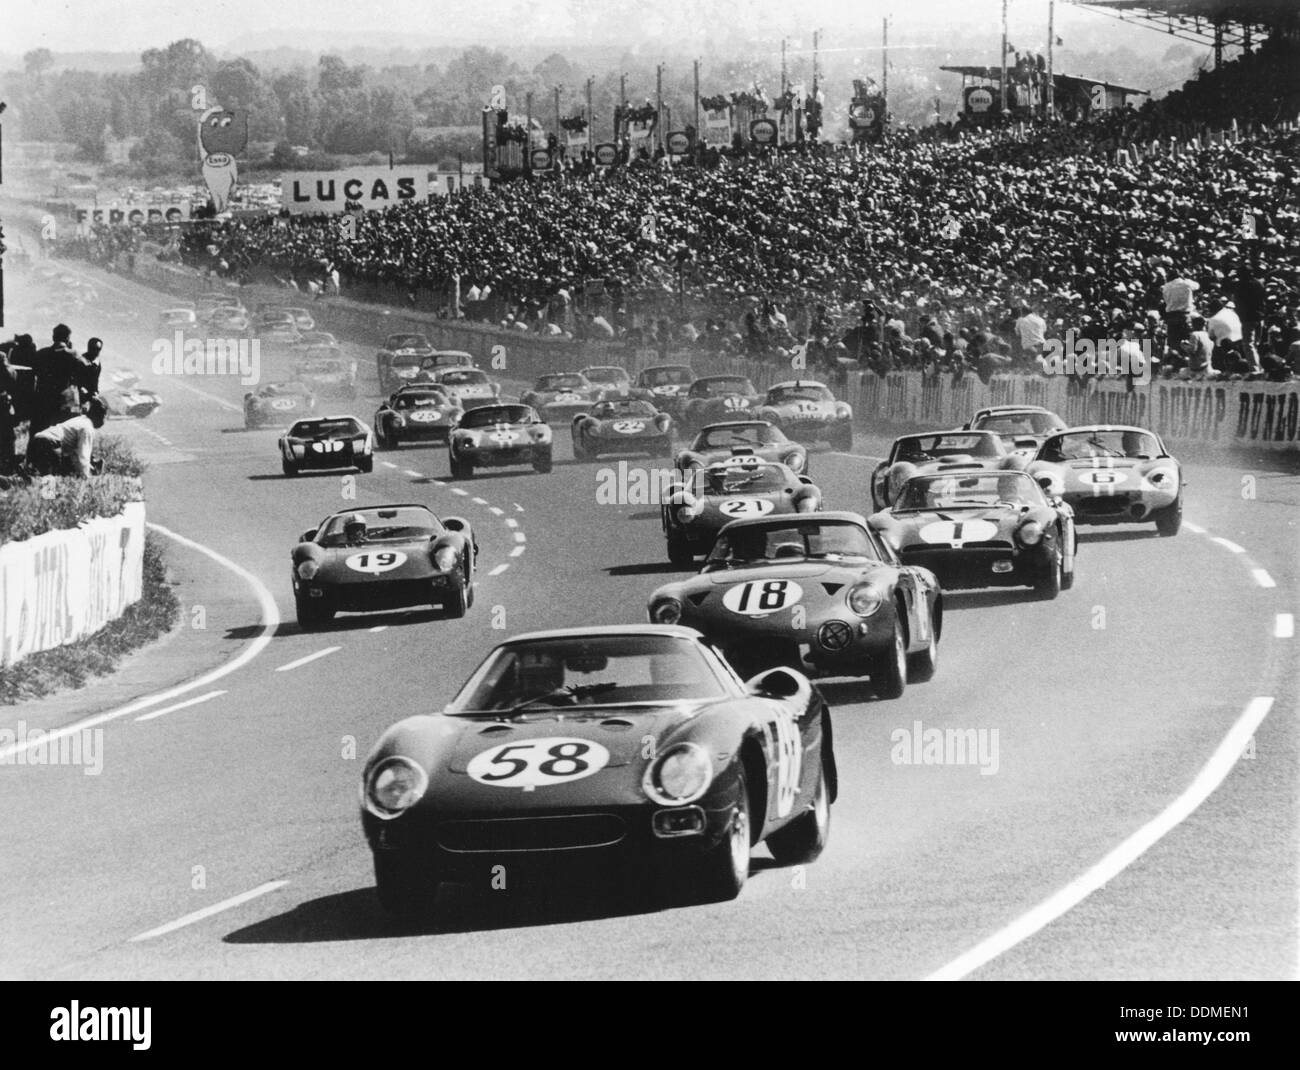 Start of the Le Mans 24 Hours, France, 1964. - Stock Image